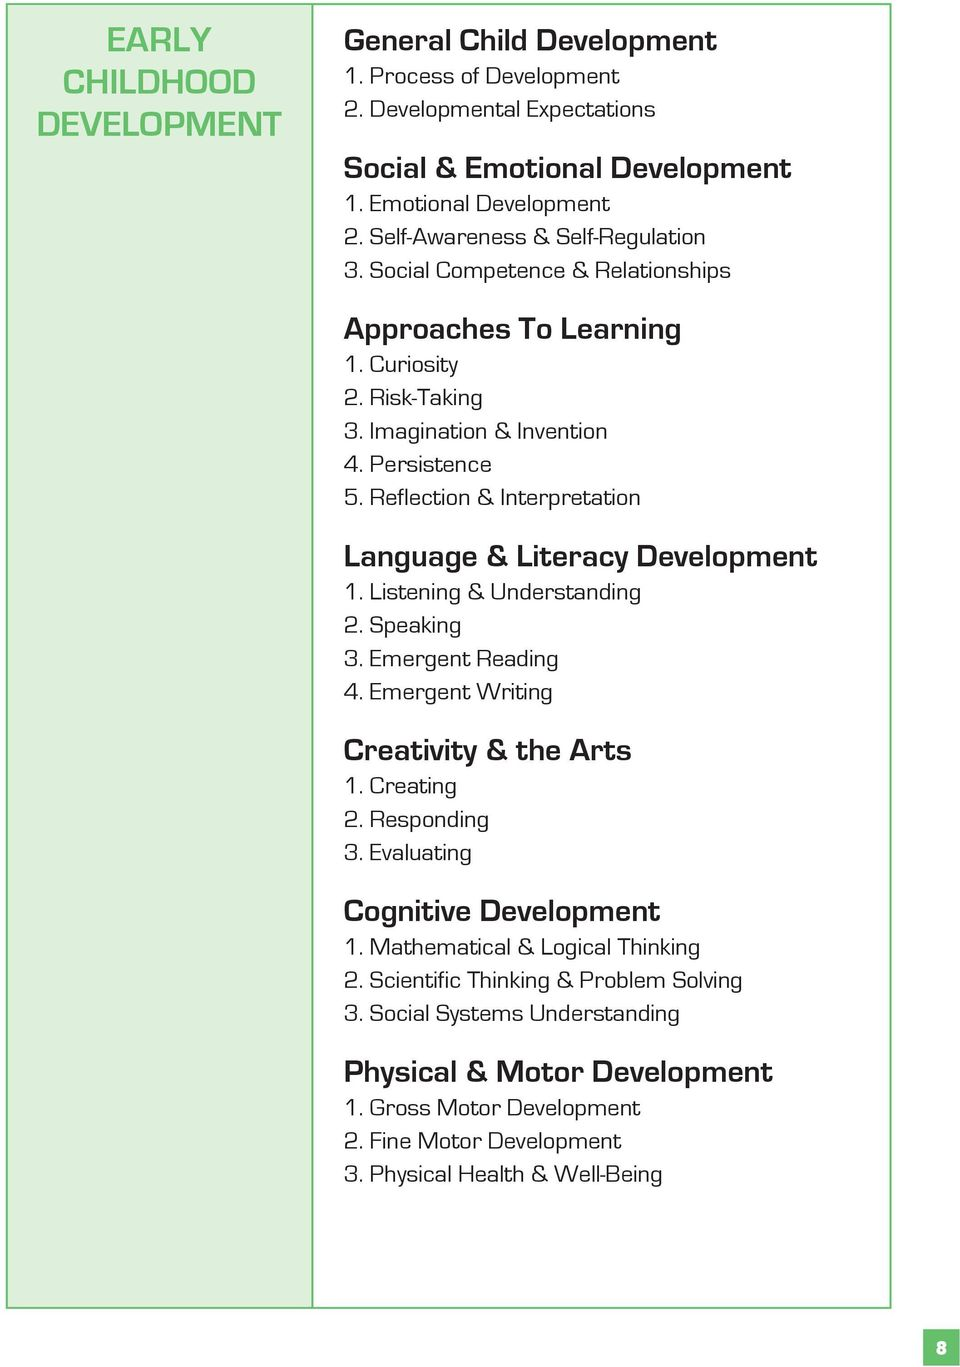 Reflection & Interpretation Language & Literacy Development 1. Listening & Understanding 2. Speaking 3. Emergent Reading 4. Emergent Writing Creativity & the Arts 1. Creating 2. Responding 3.